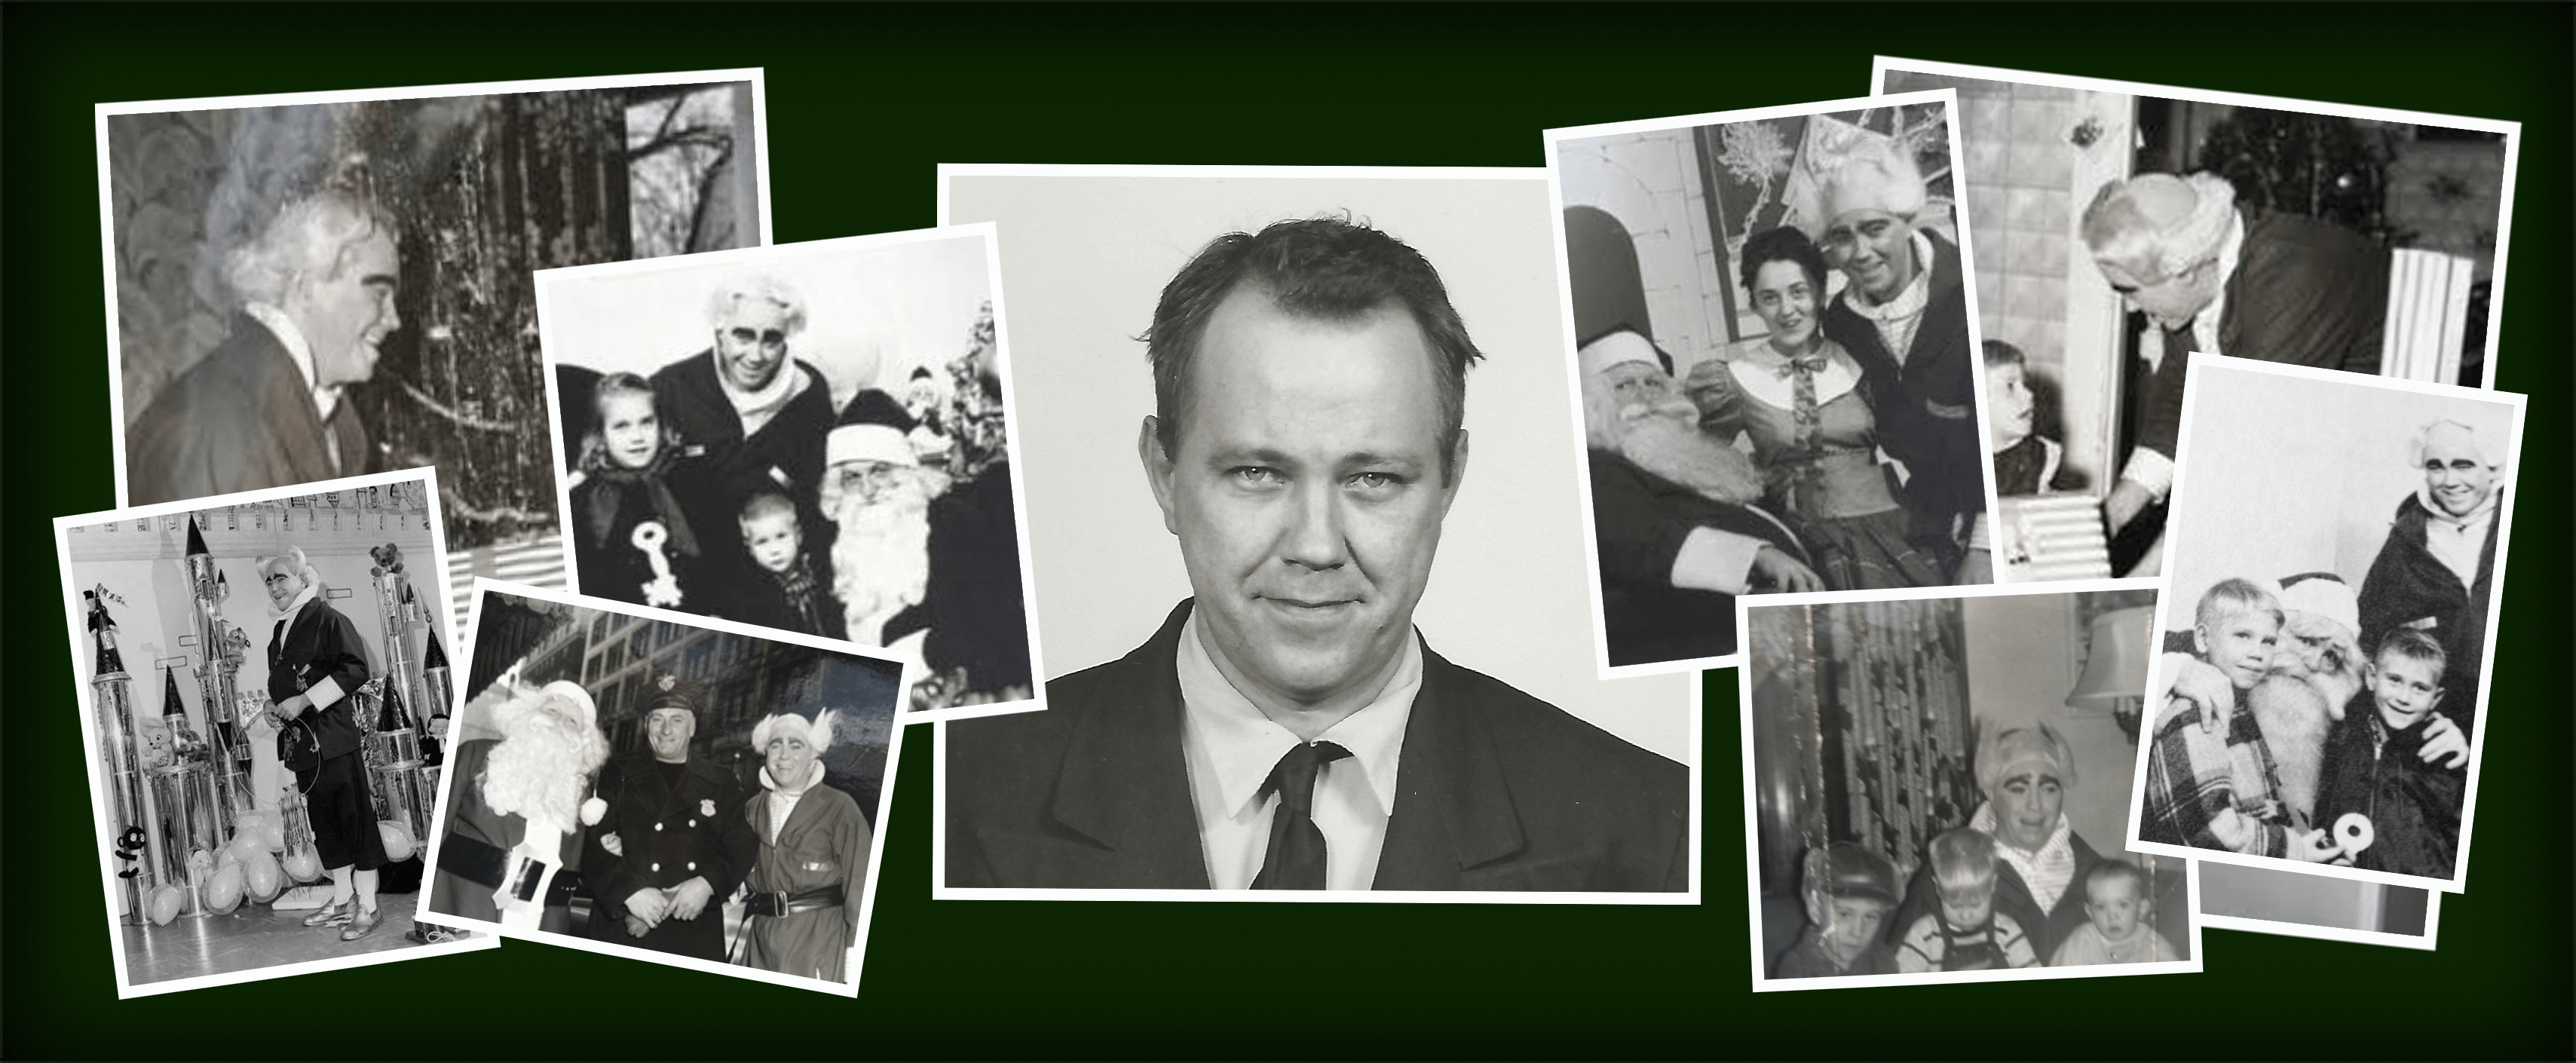 Photos of the first Mr. Jingeling, Thomas V. Moviel in Cleveland, Ohio.